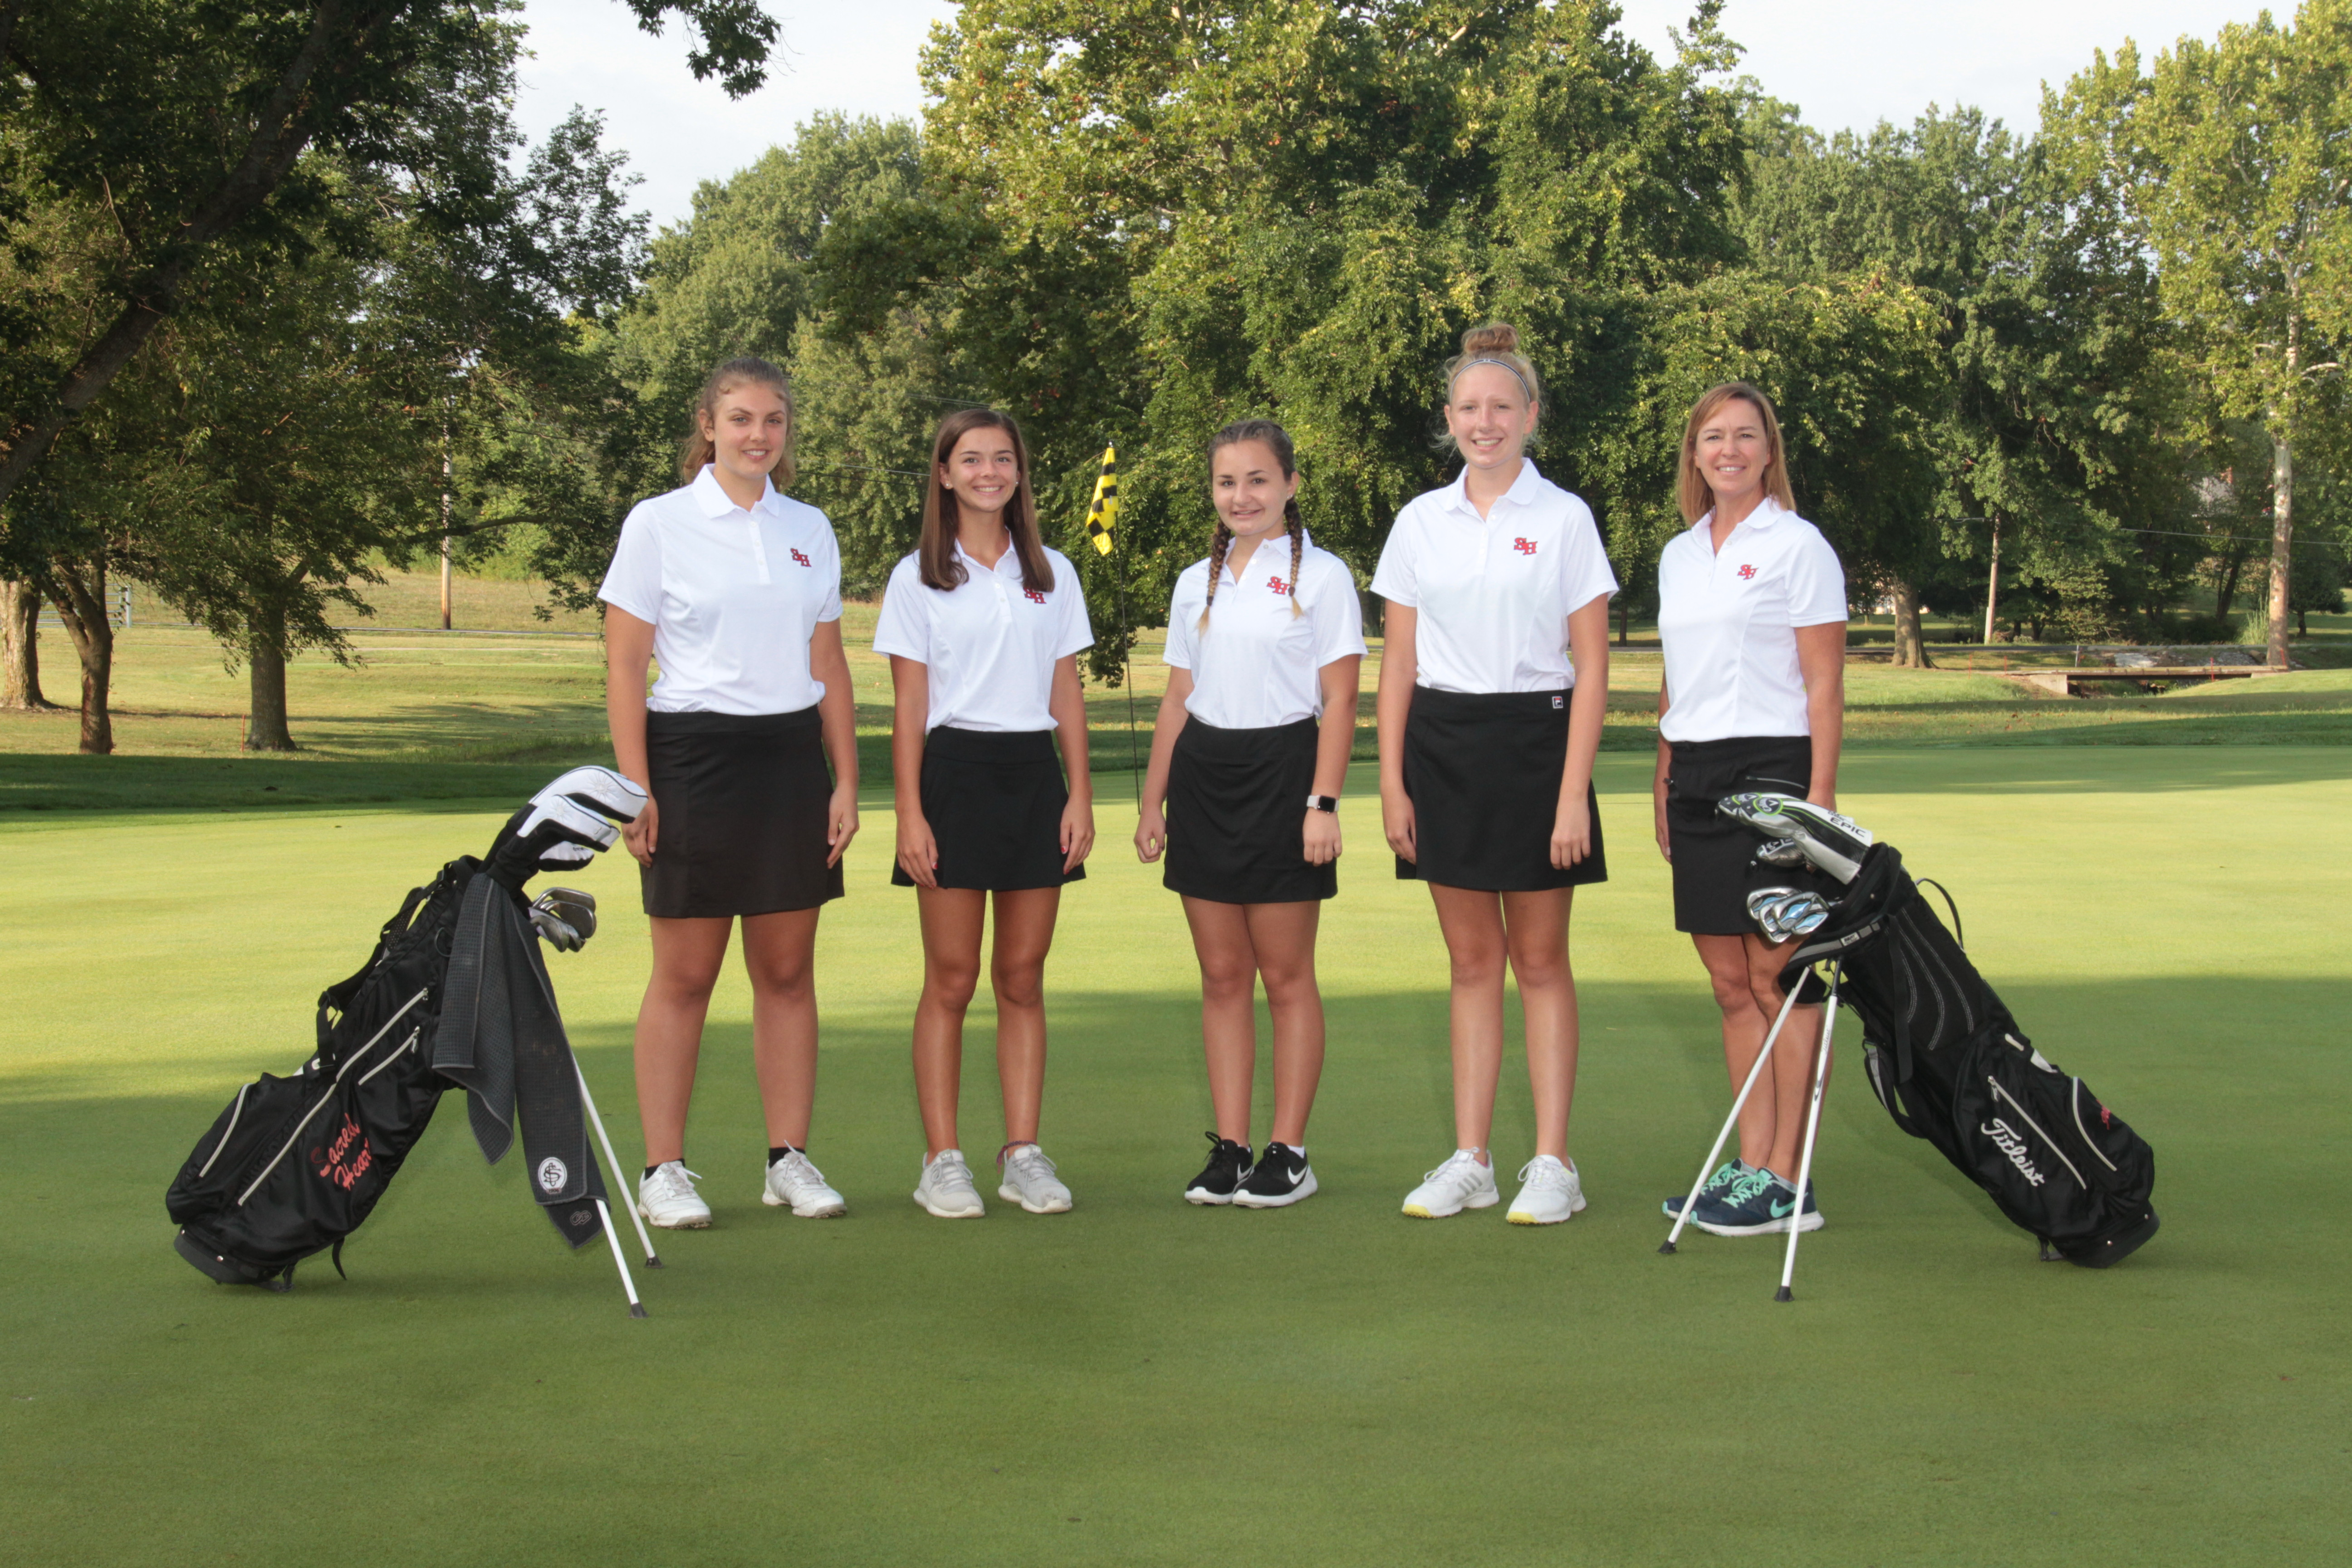 2018 Gremlin Ladies Golf Team